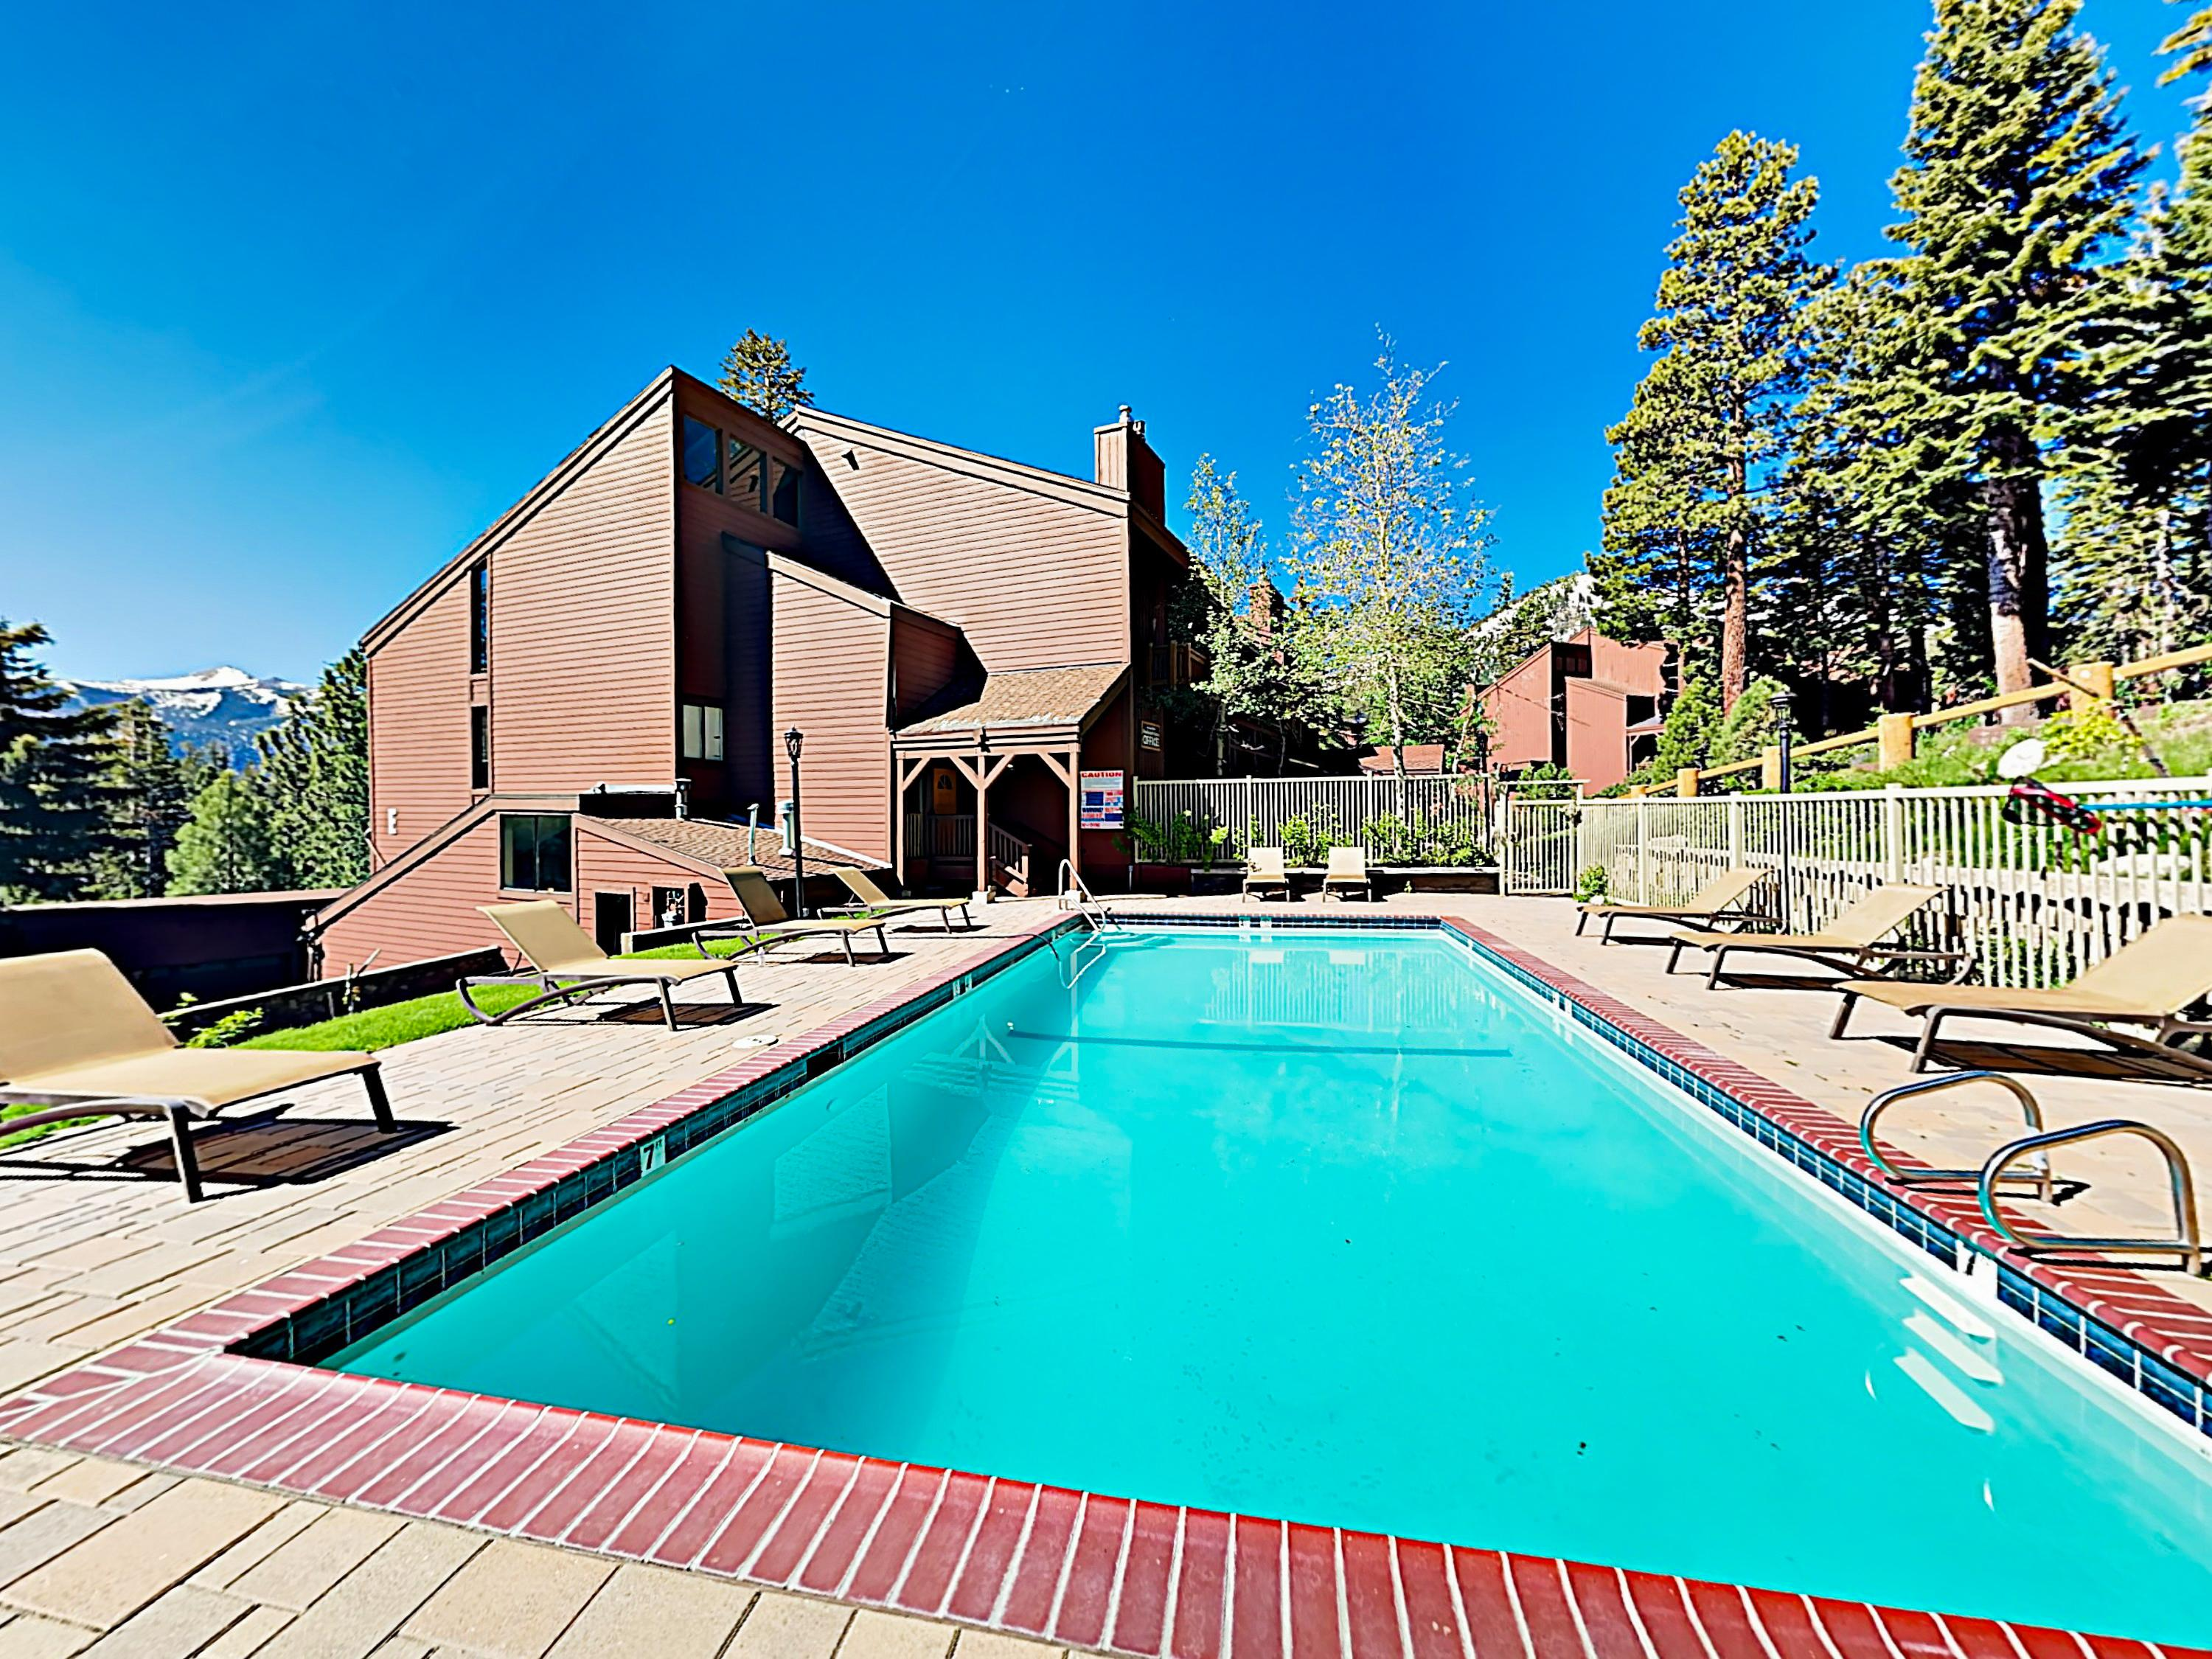 Spend sunny days by the heated pool during the summer months.